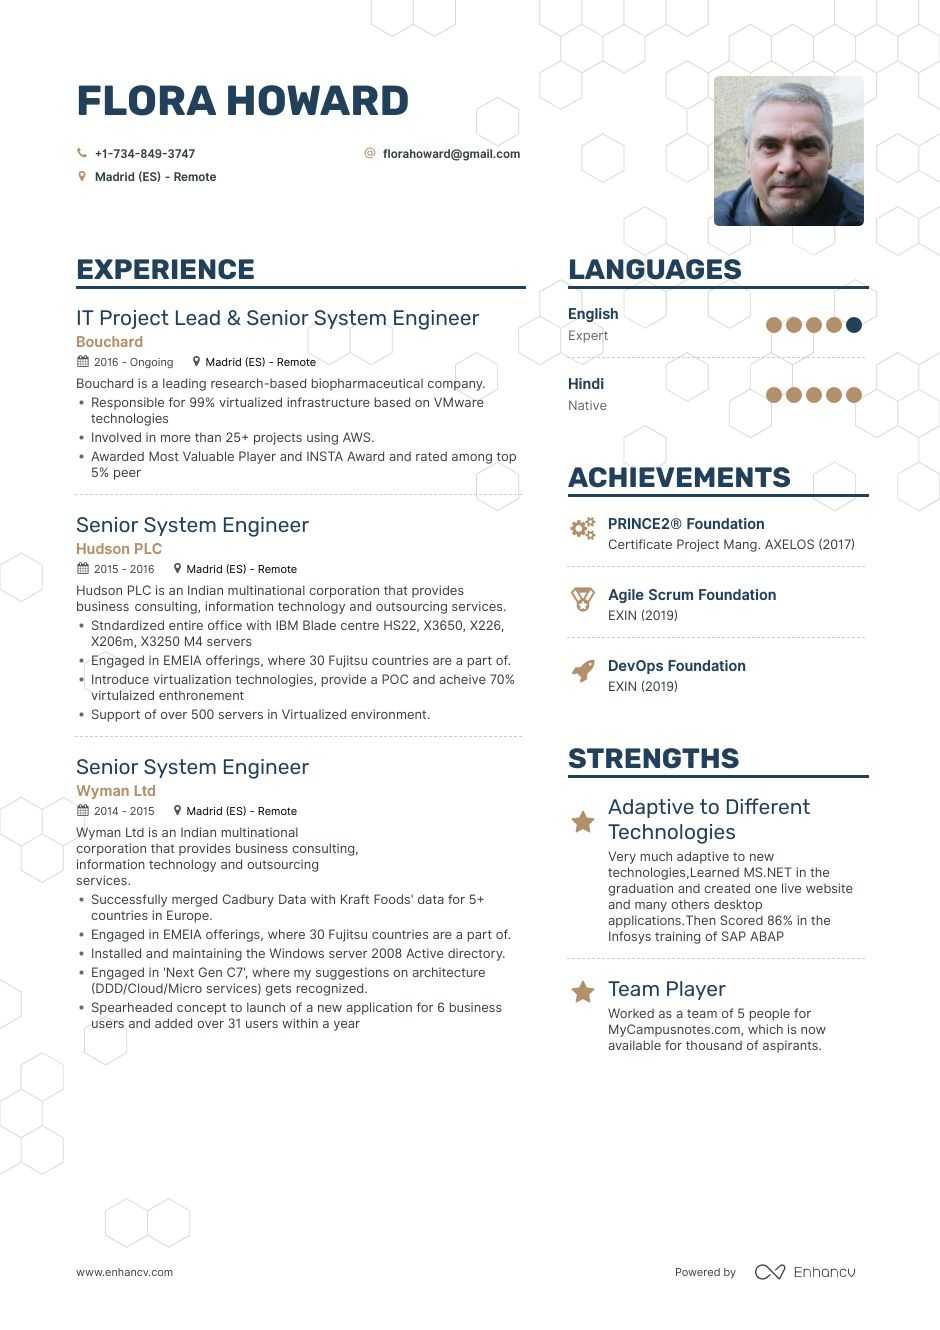 senior system engineer resume example for enhancv systems free templates microsoft office Resume Senior Systems Engineer Resume